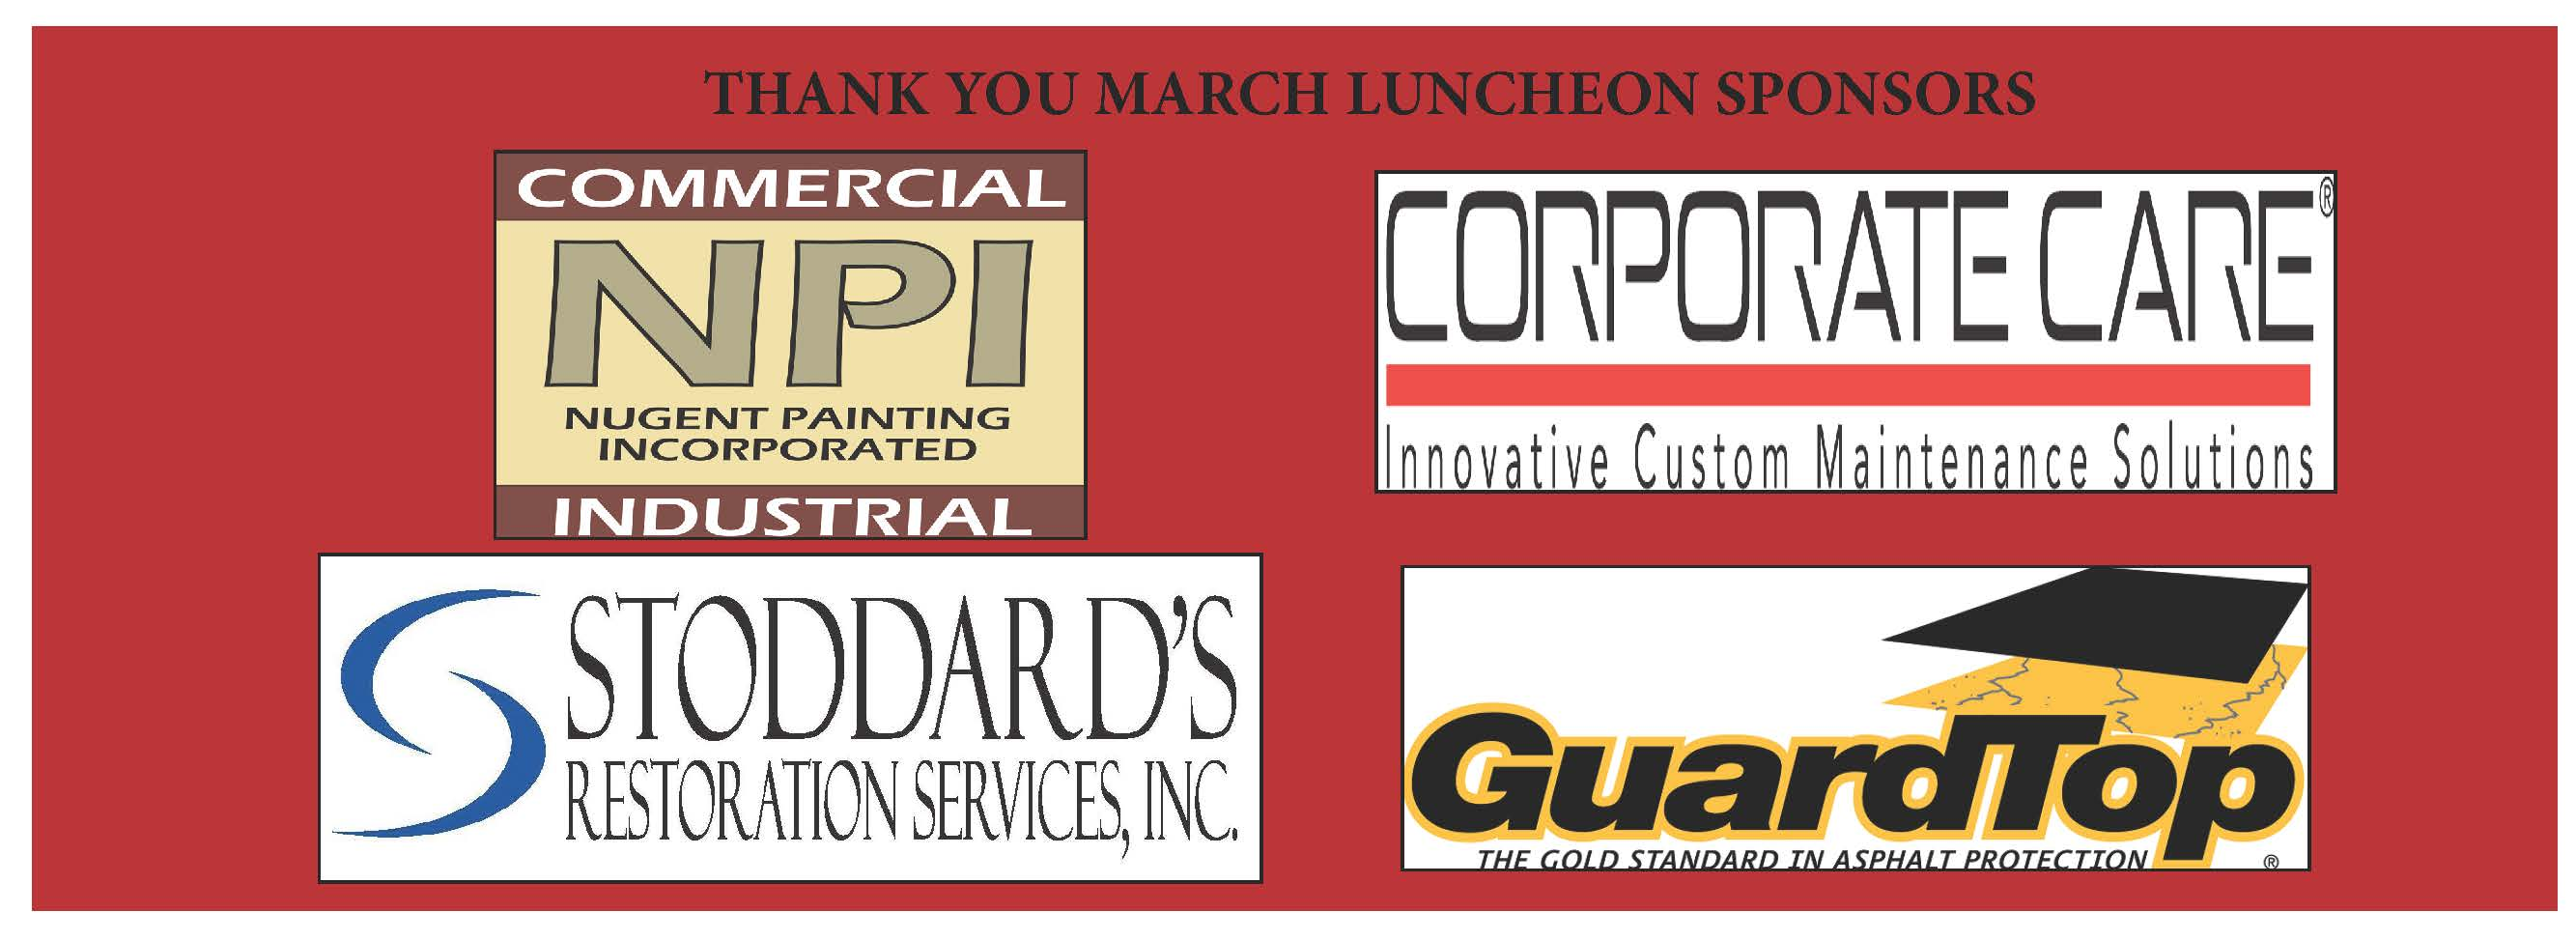 March Luncheon Sponsors